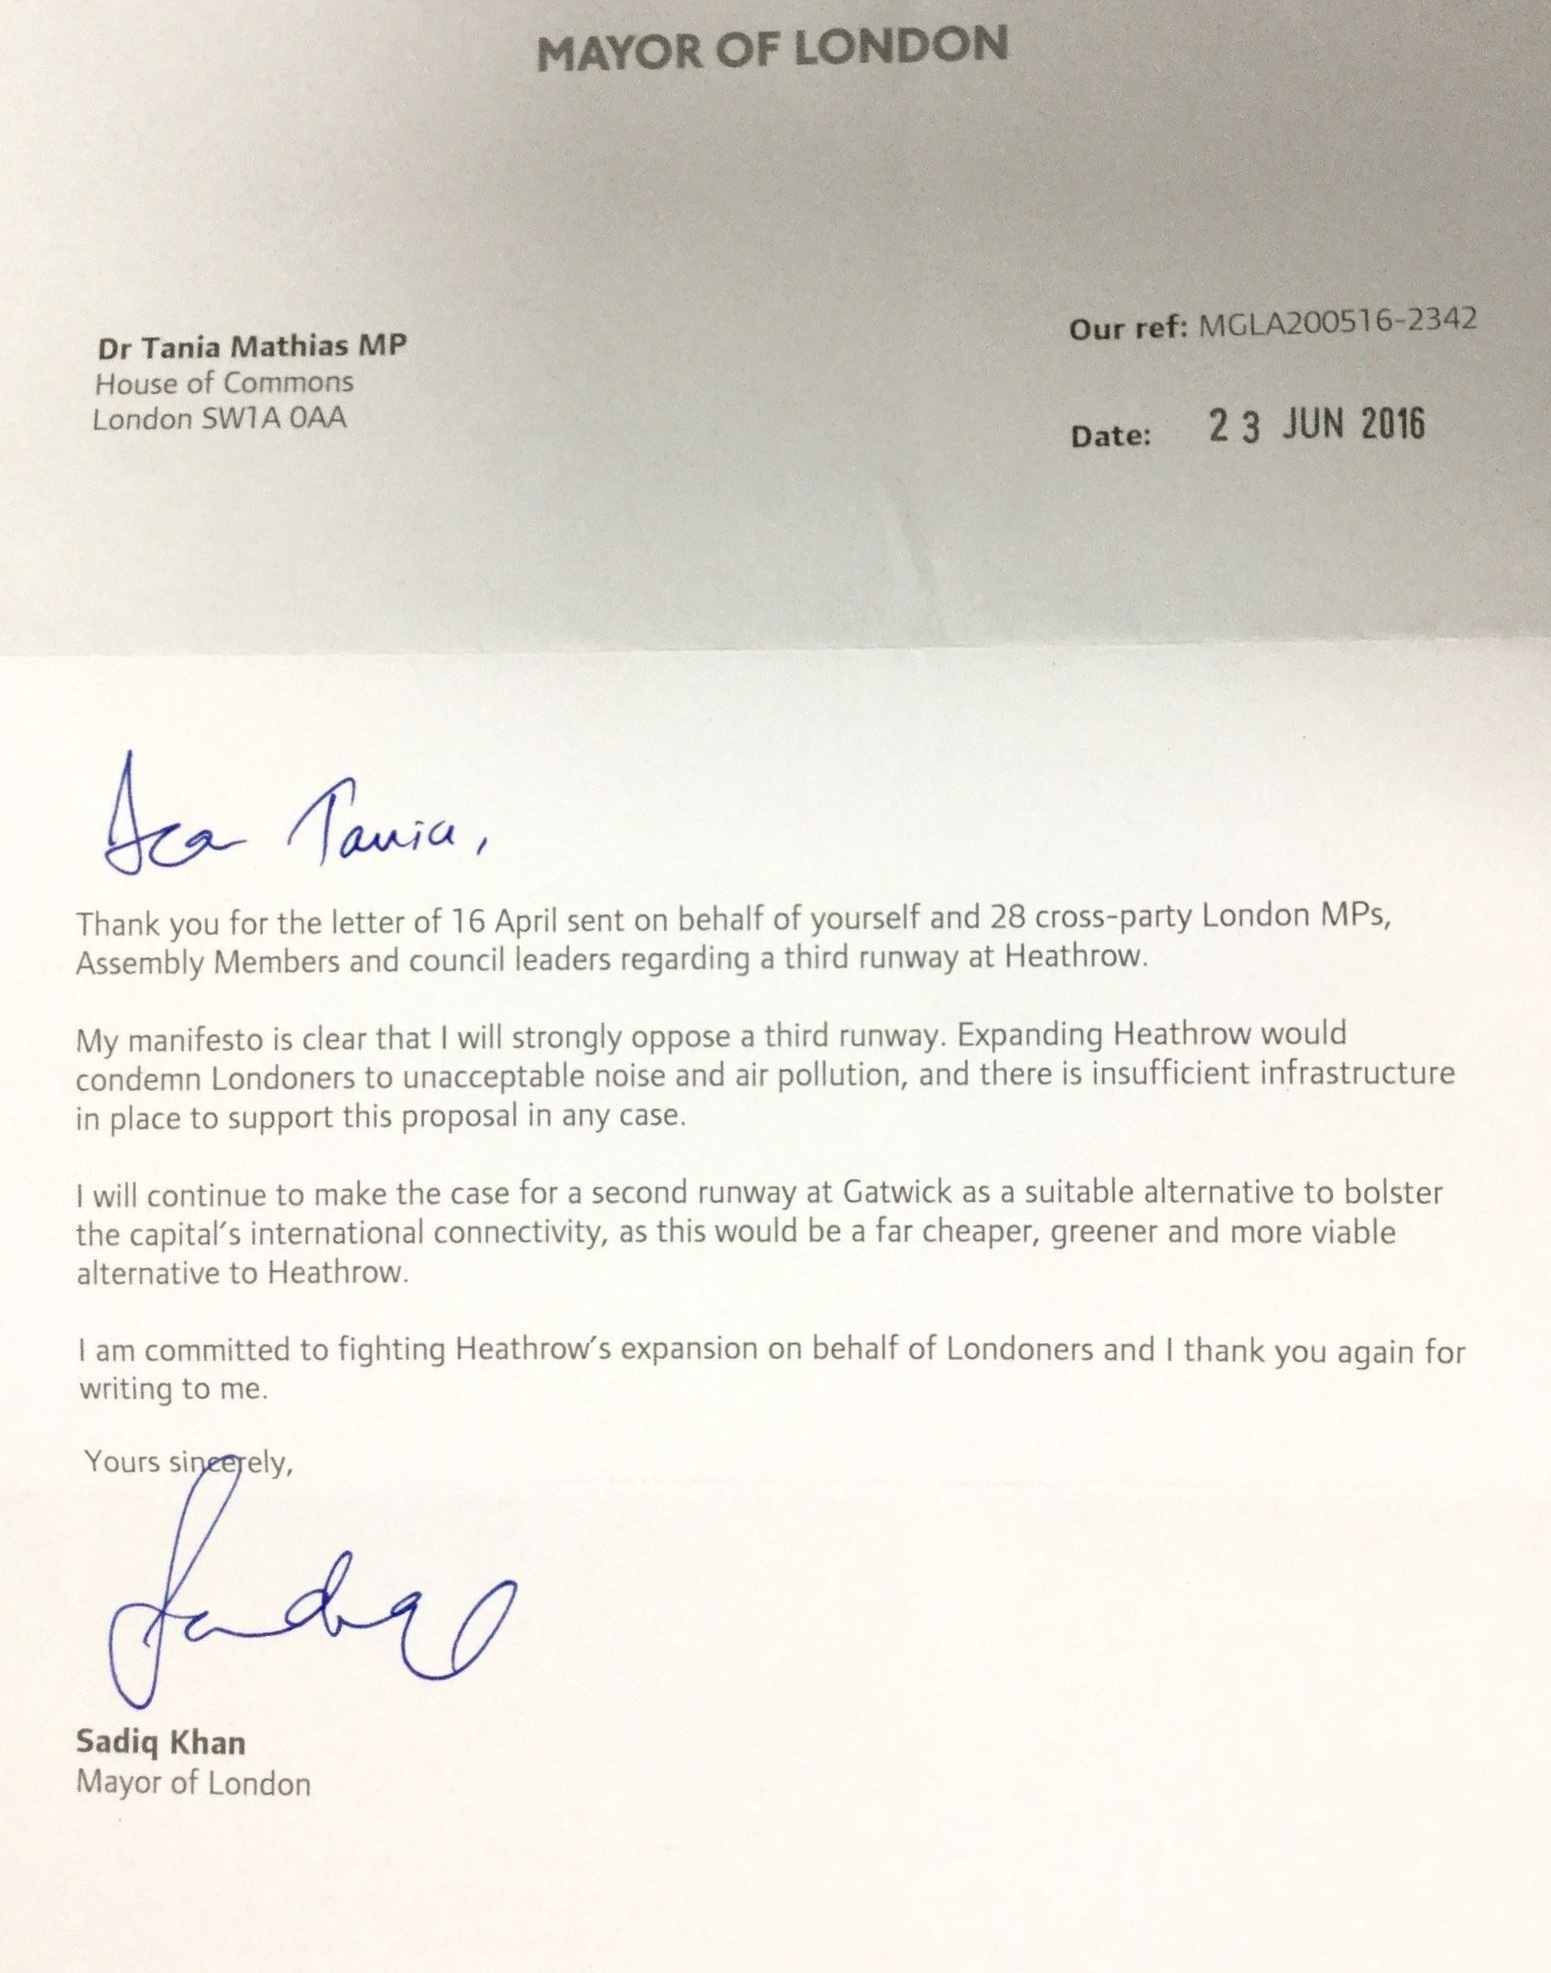 The Mayor of London's letter of support